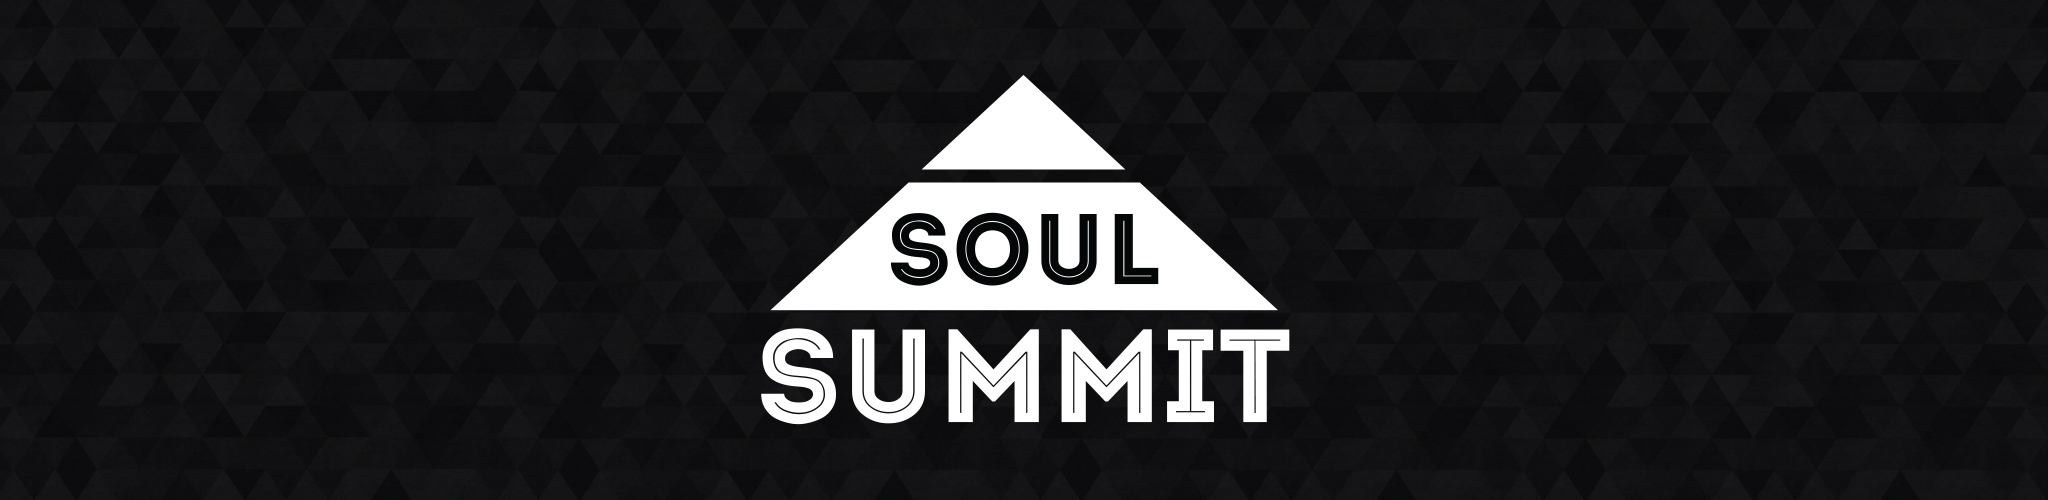 About Soul Summit